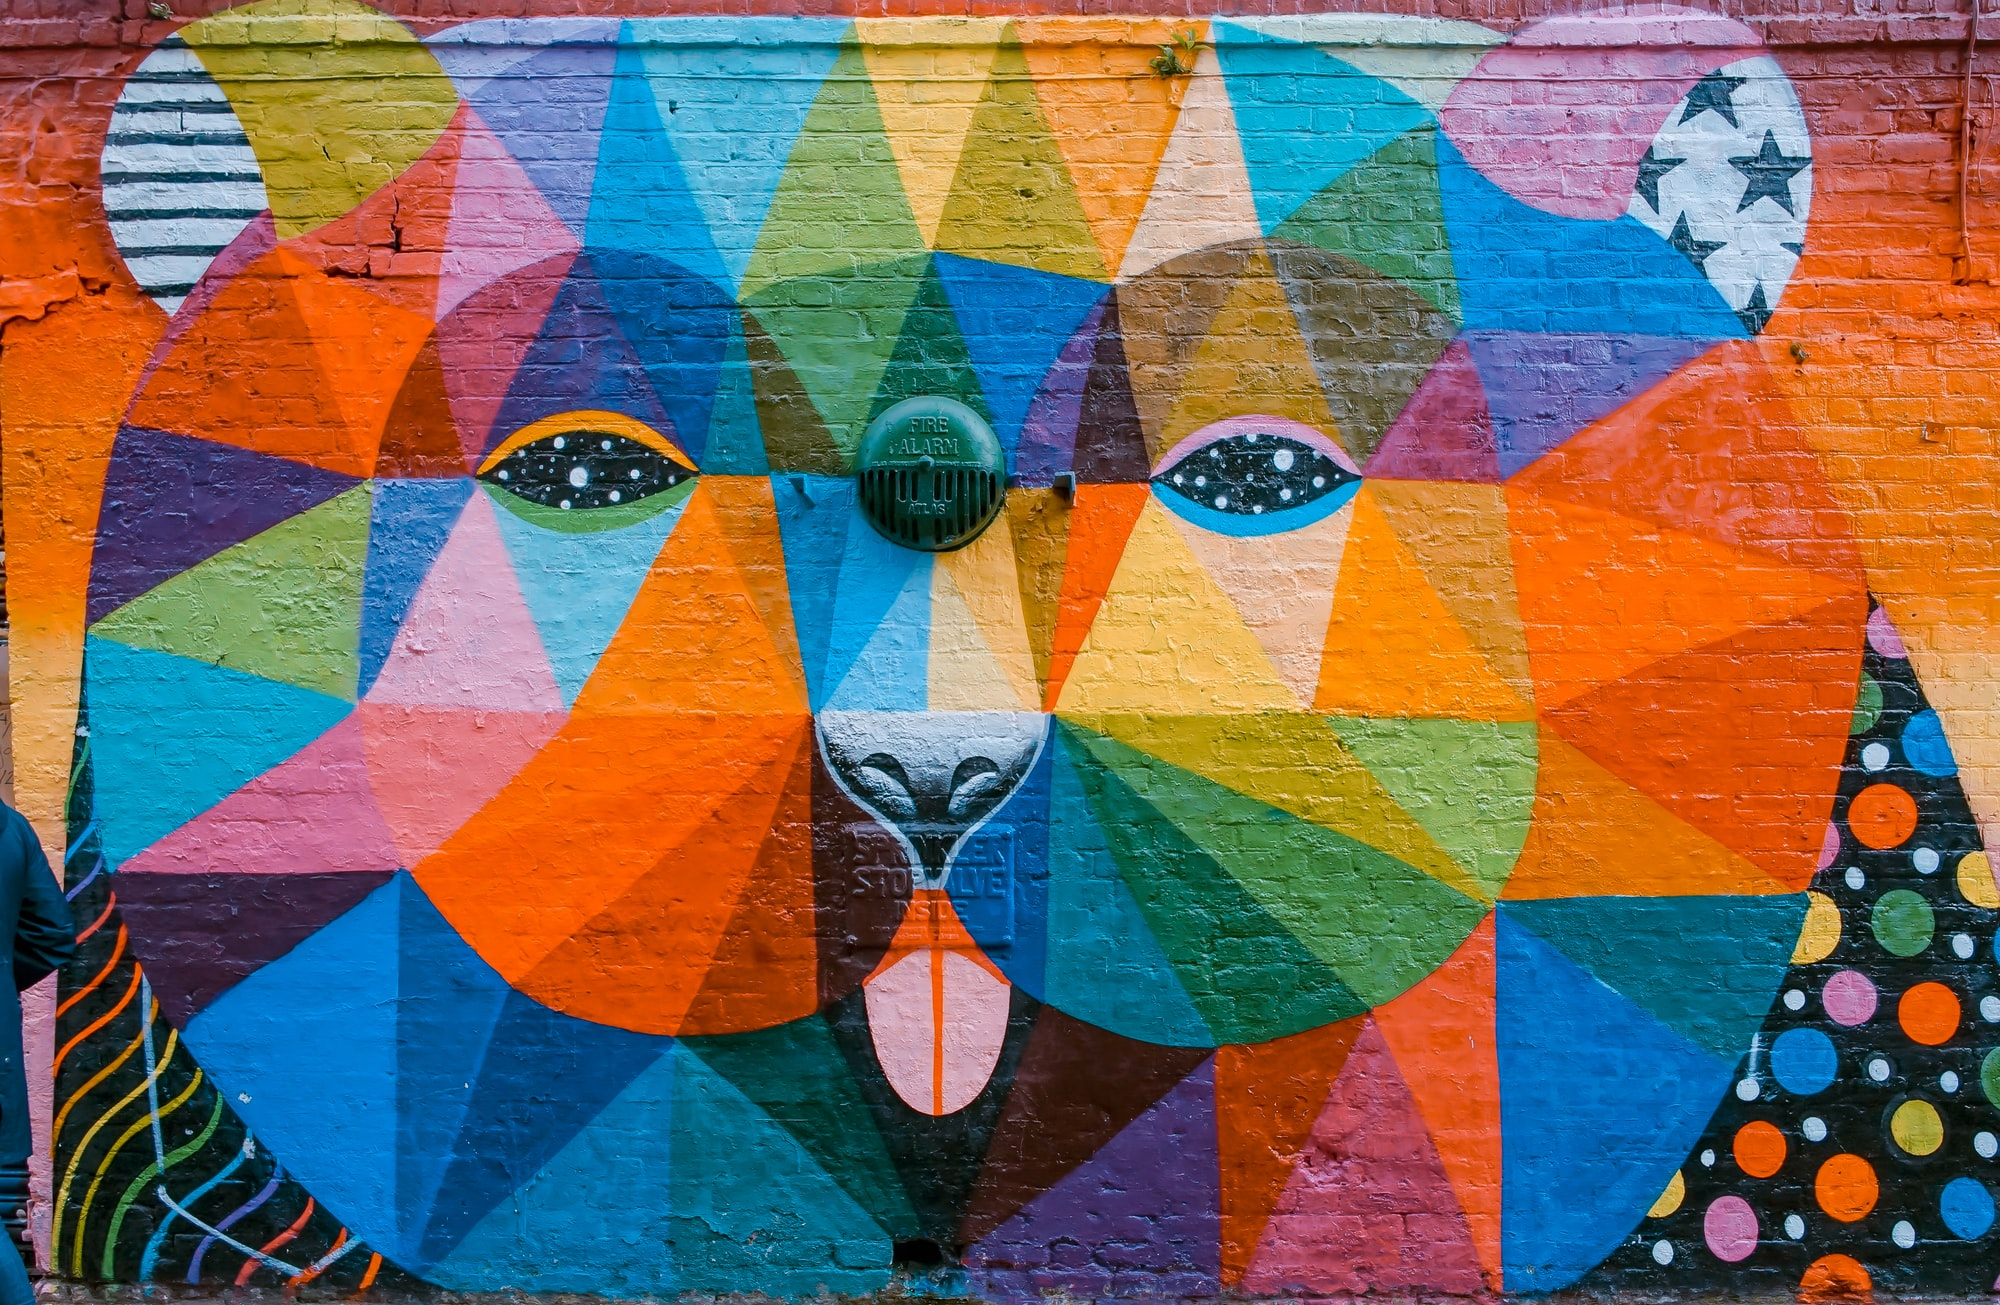 """Cool artwork  """"Oso"""" by Okuda San Miguel, down in Shoreditch, London."""